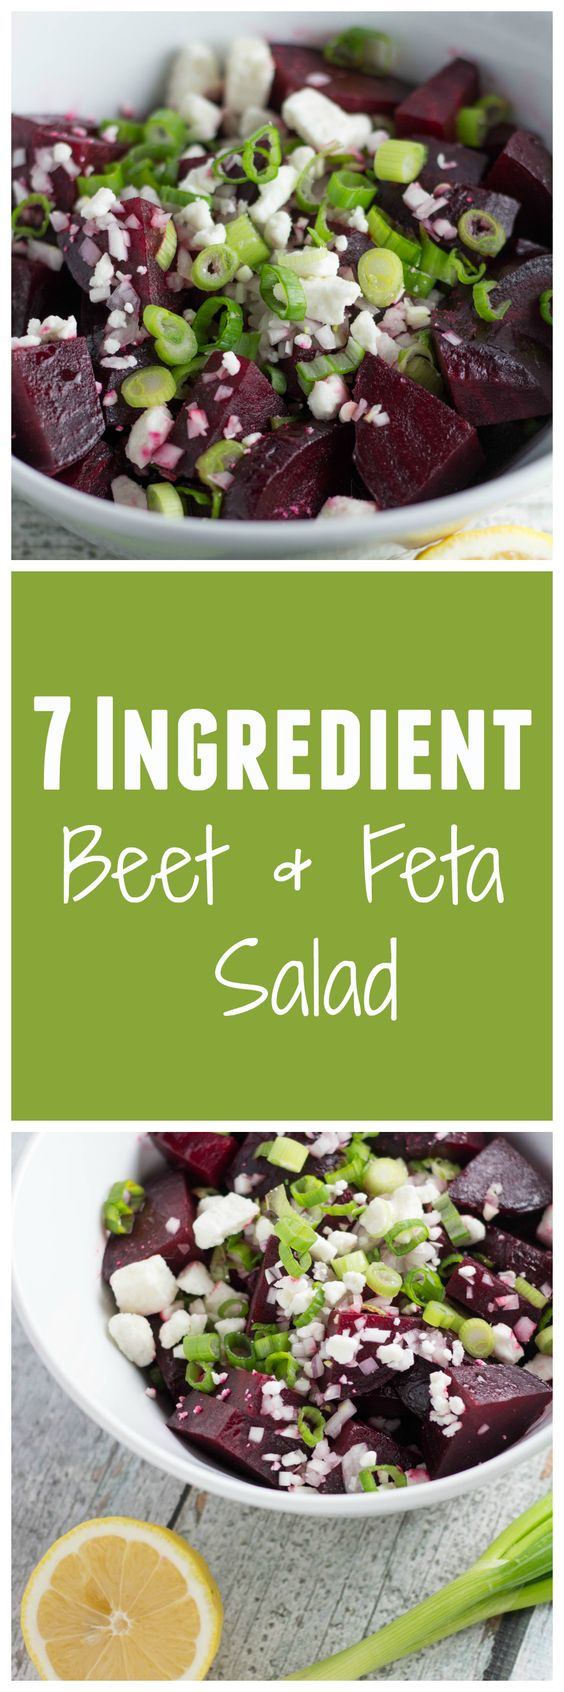 EASY 7 Ingredient Roasted Beet and Feta Salad! Krollskorner.com